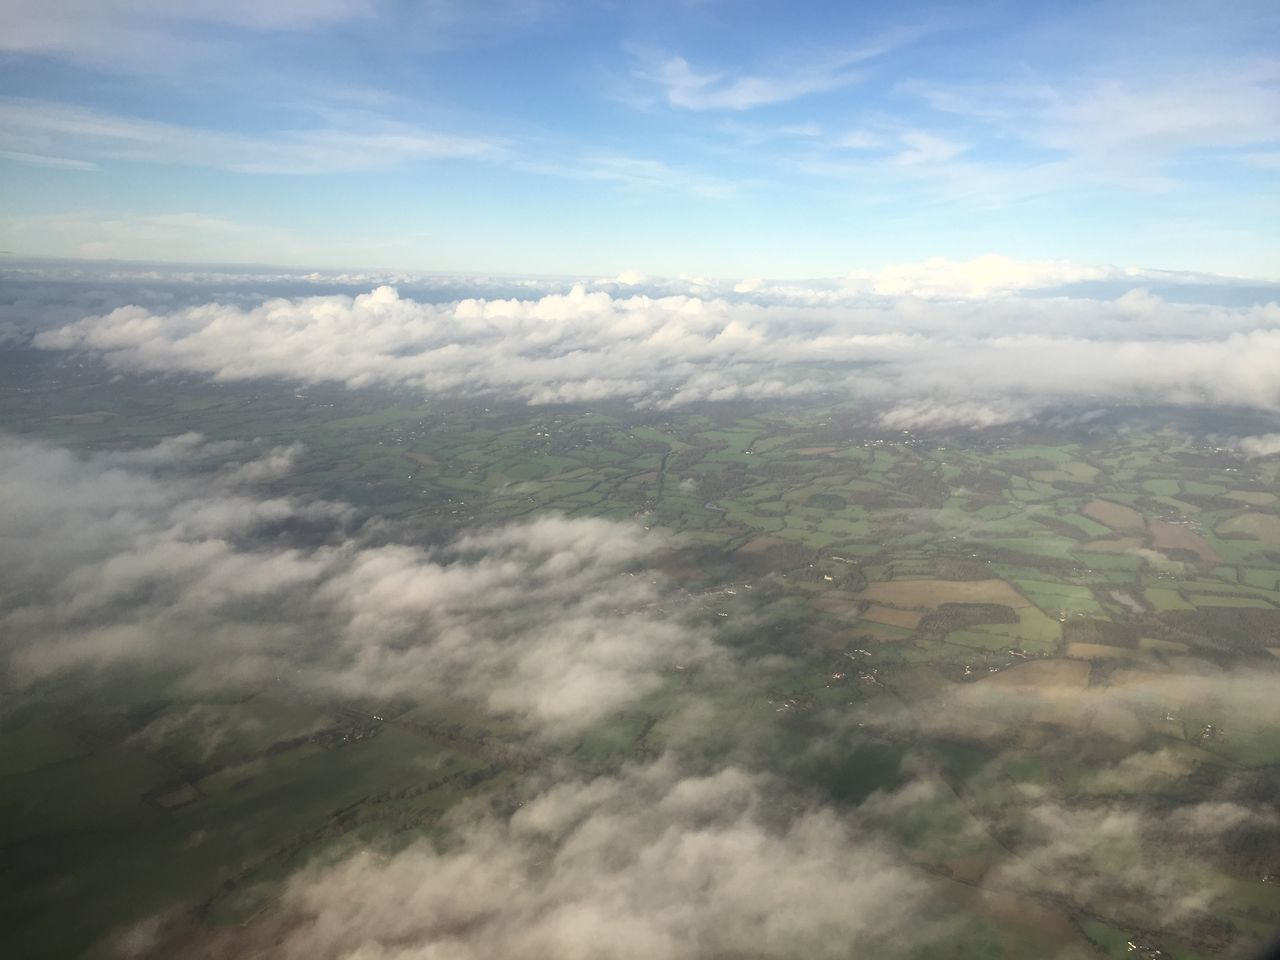 beauty in nature, nature, scenics, tranquil scene, tranquility, landscape, day, outdoors, aerial view, cloud - sky, no people, sky, agriculture, patchwork landscape, rural scene